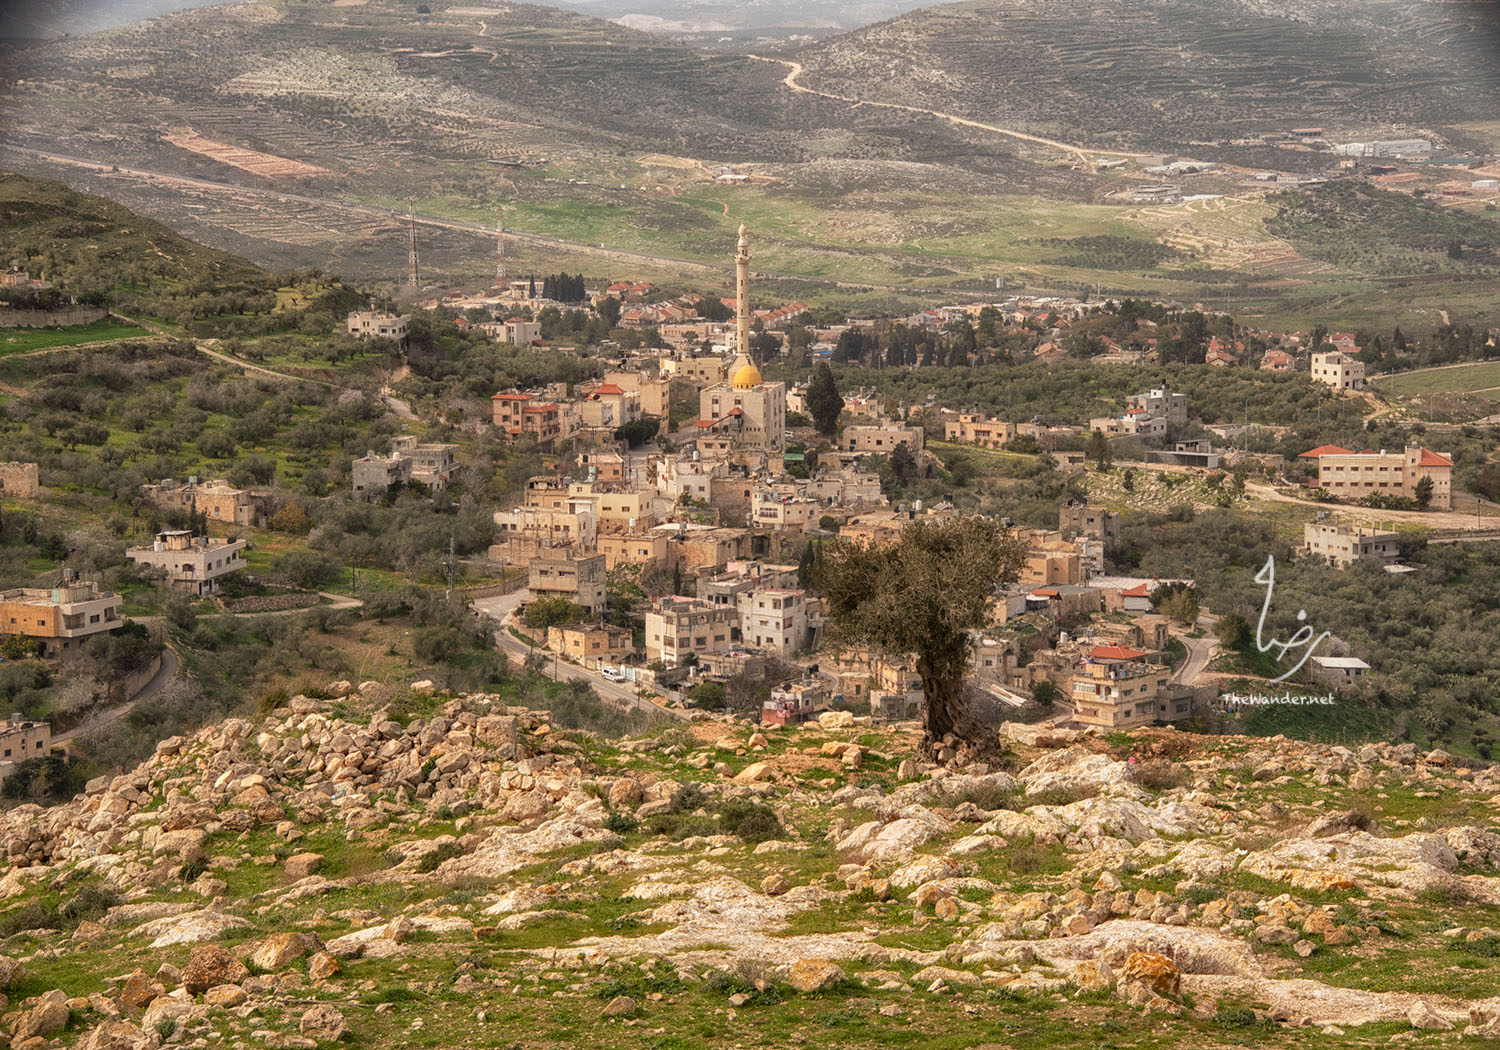 The village of Al-naqura